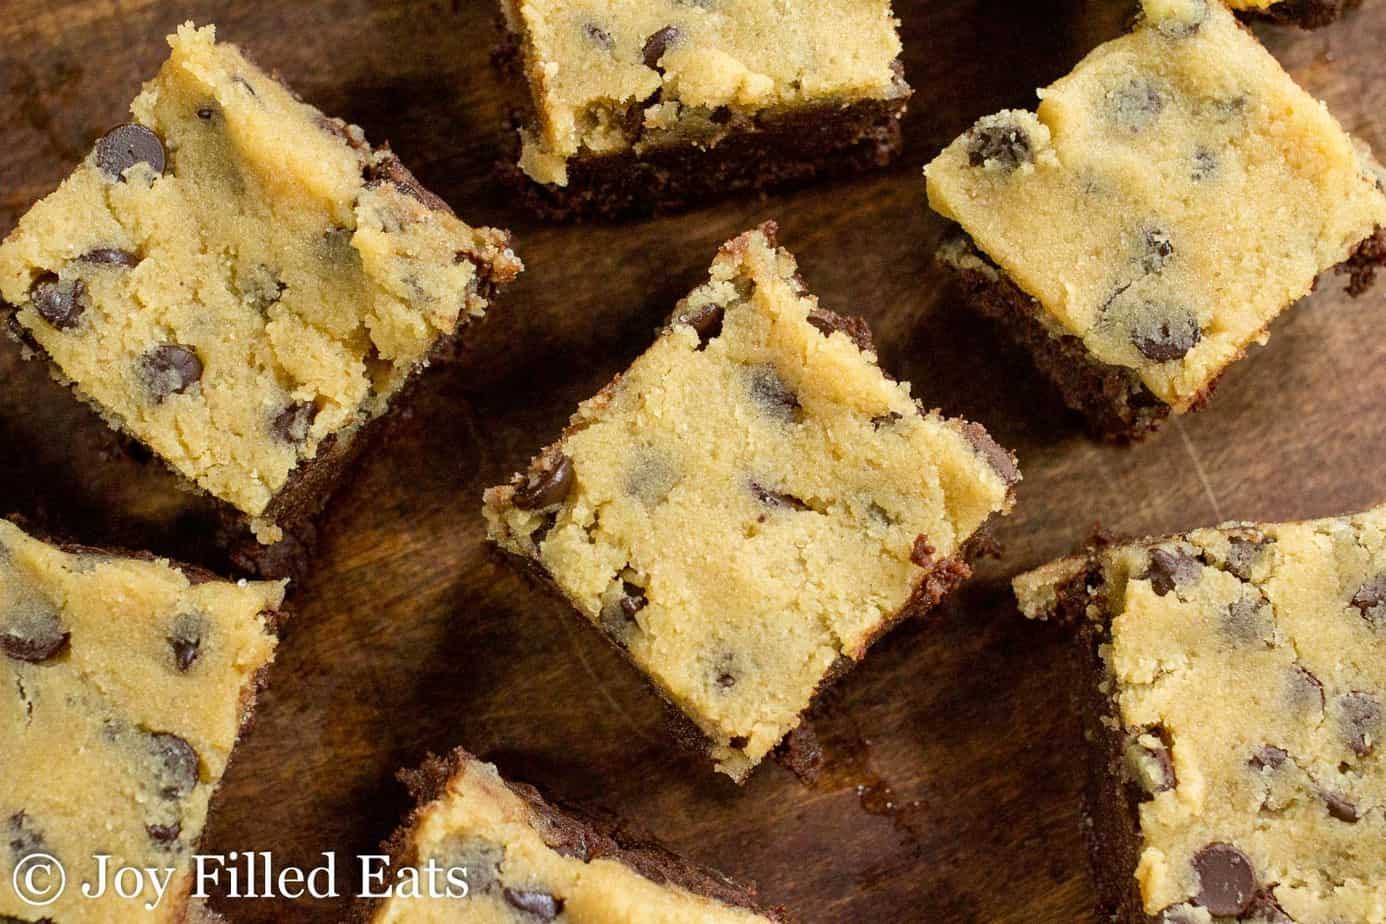 overhead view of chocolate chip cookie dough brownies arranged on a table